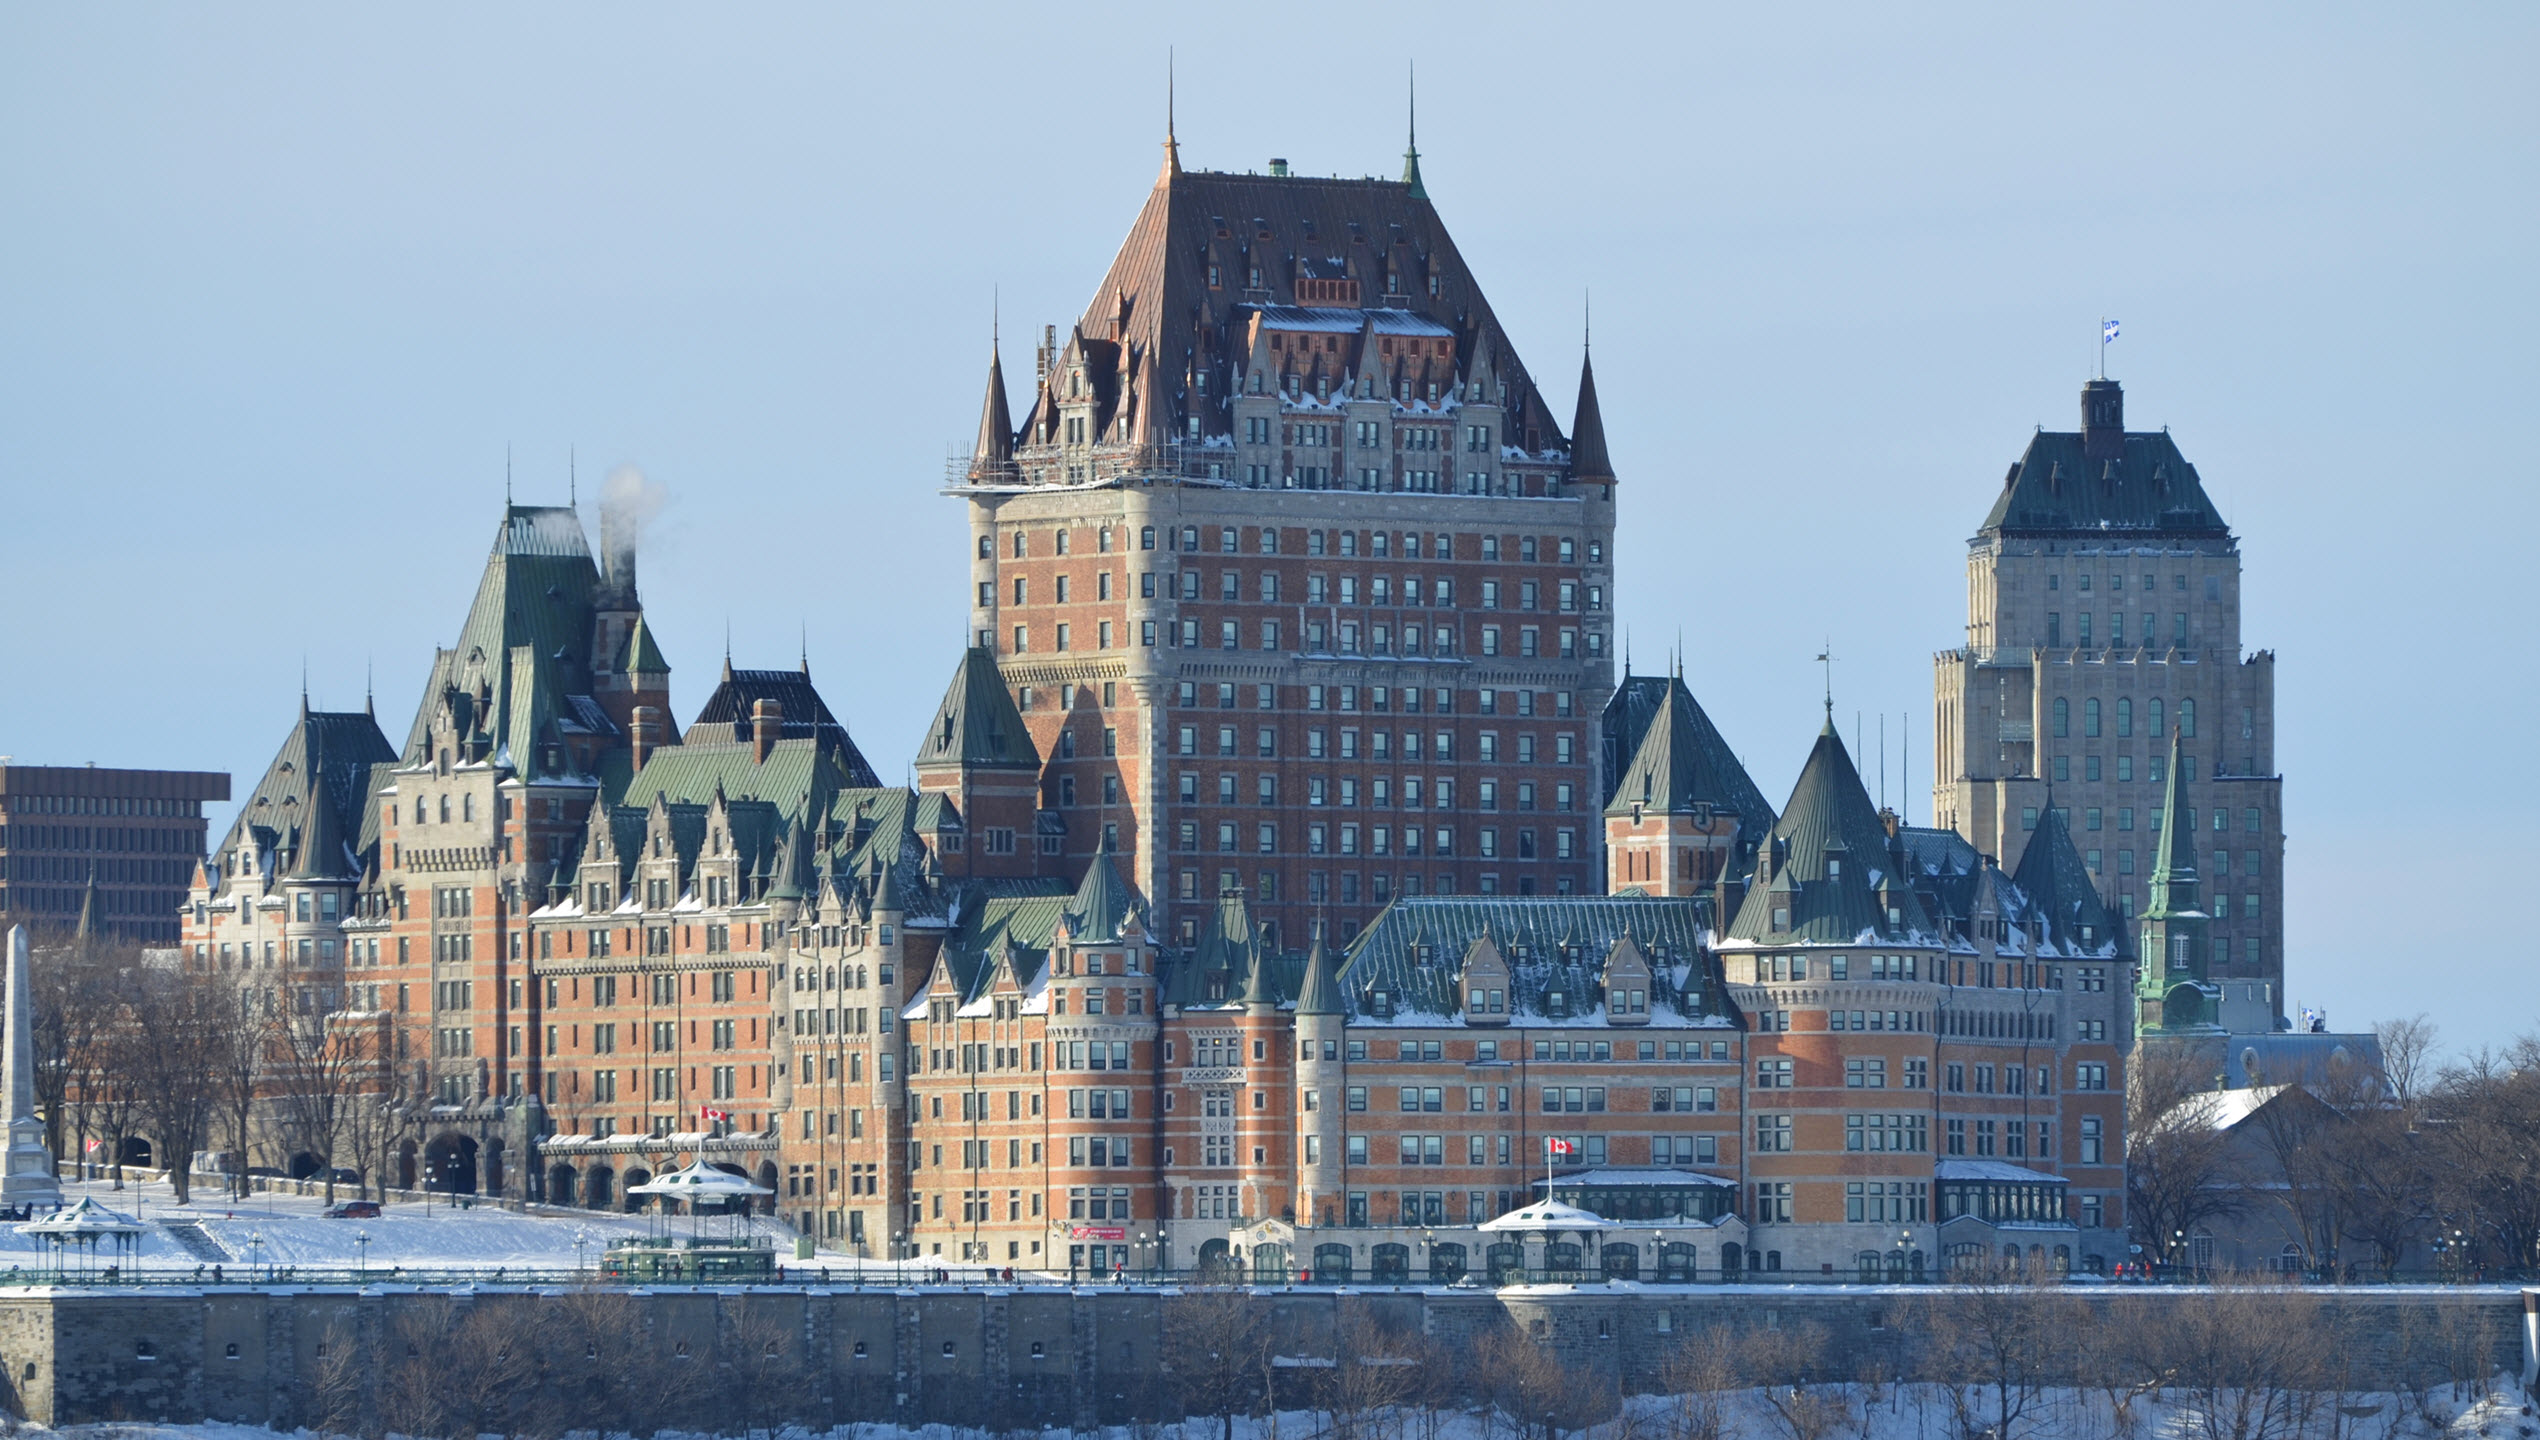 Quebec City - Chateau Frontenac 2012